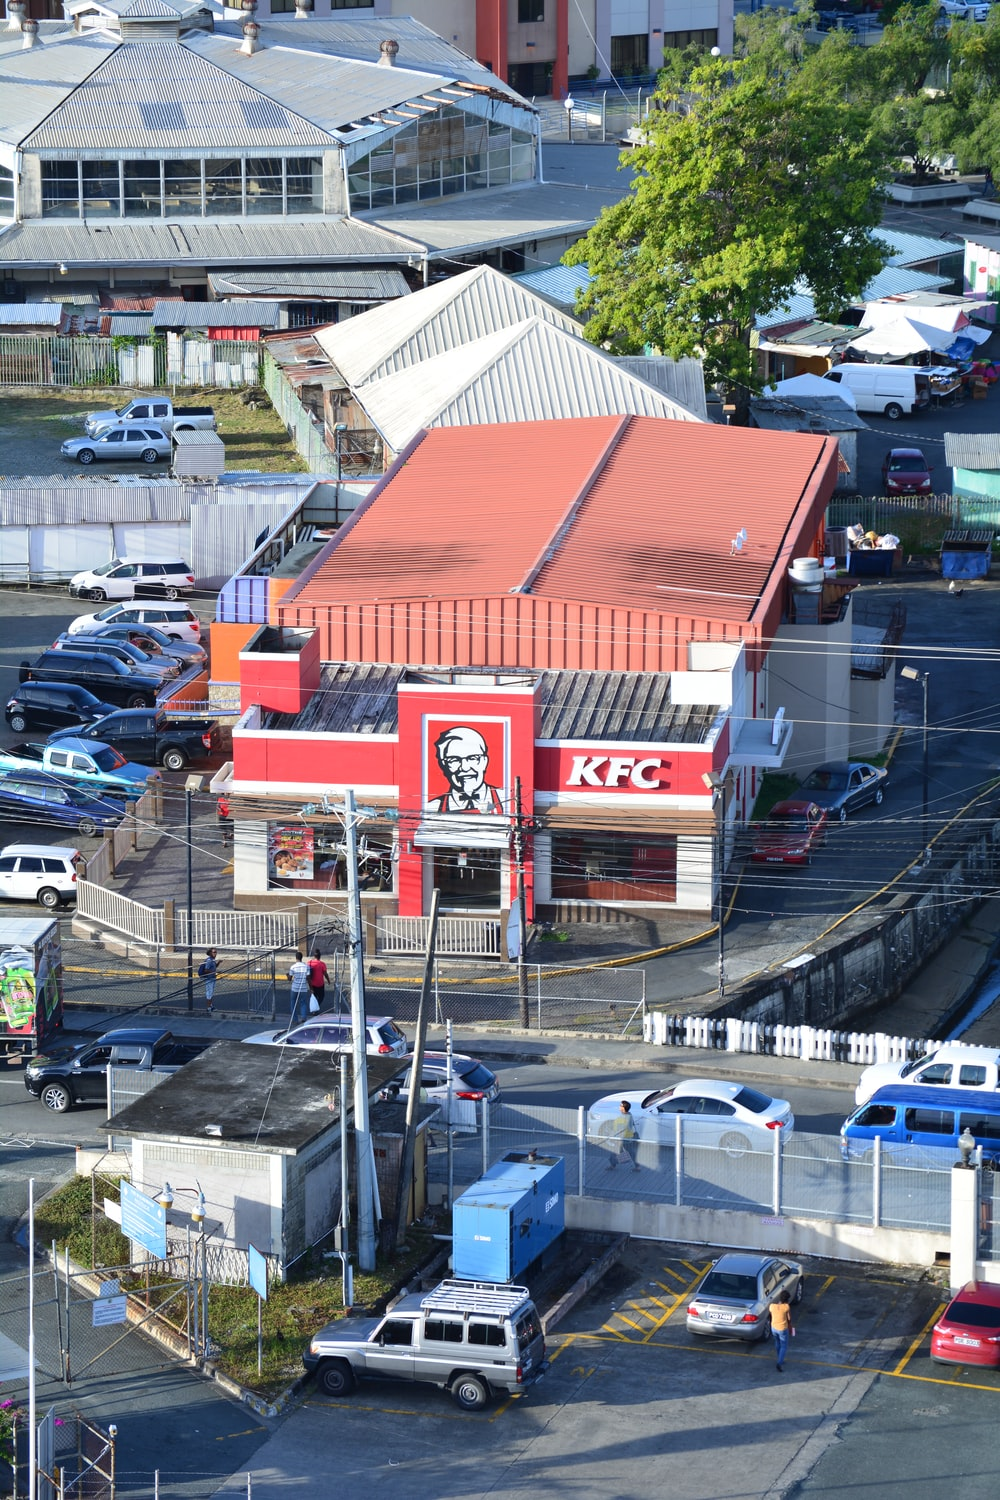 KFC building beside vehicles parked at the parking lot during day